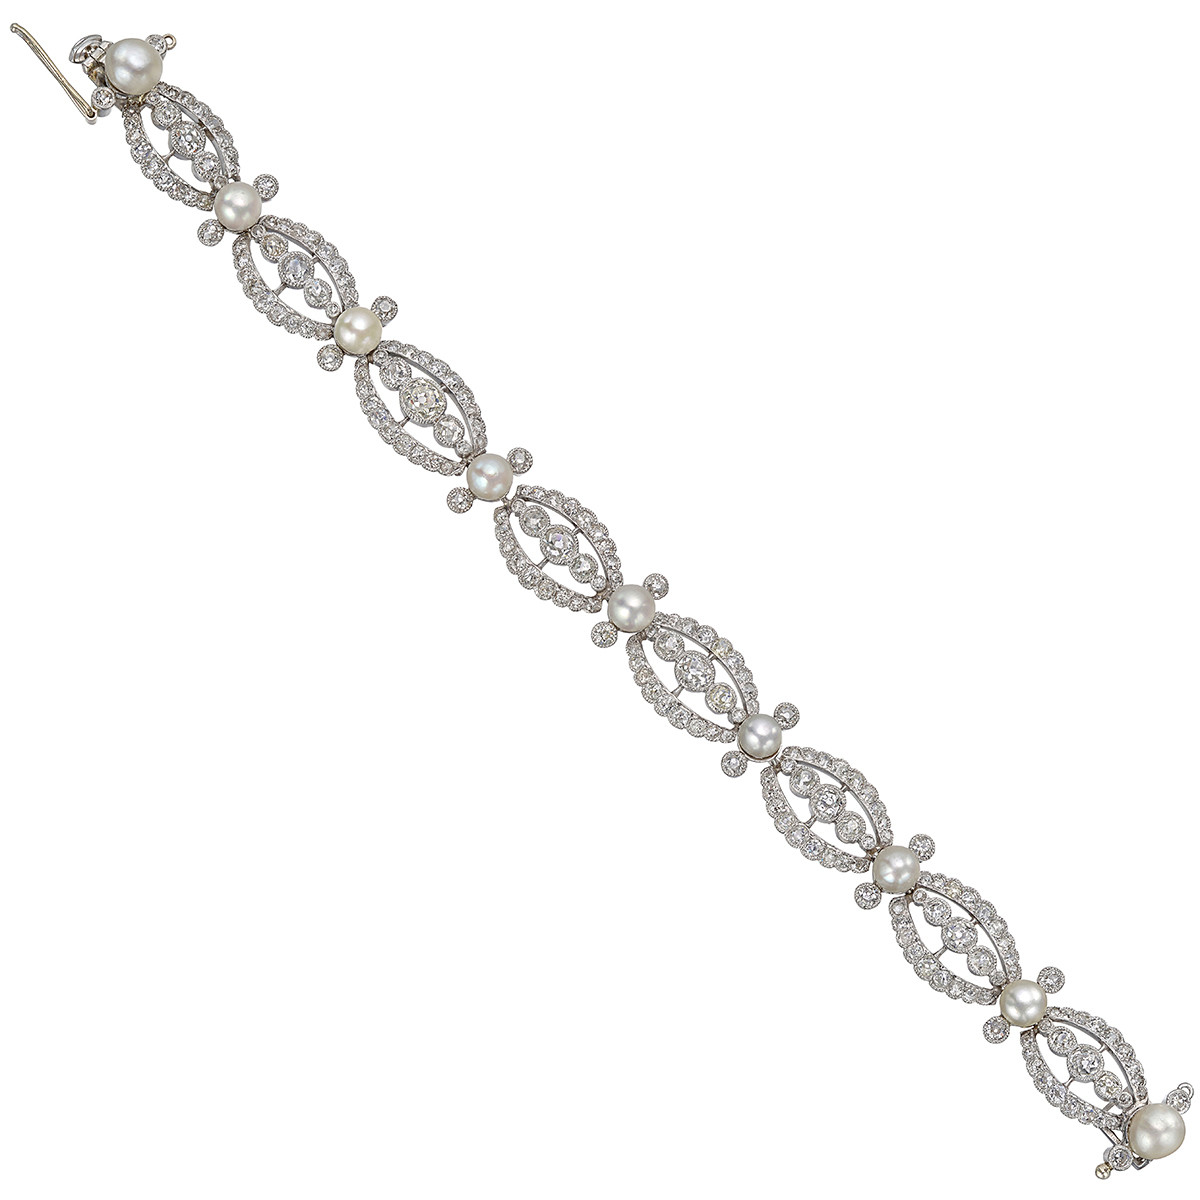 Turn-of-the-Century Old Mine Diamond & Pearl Bracelet